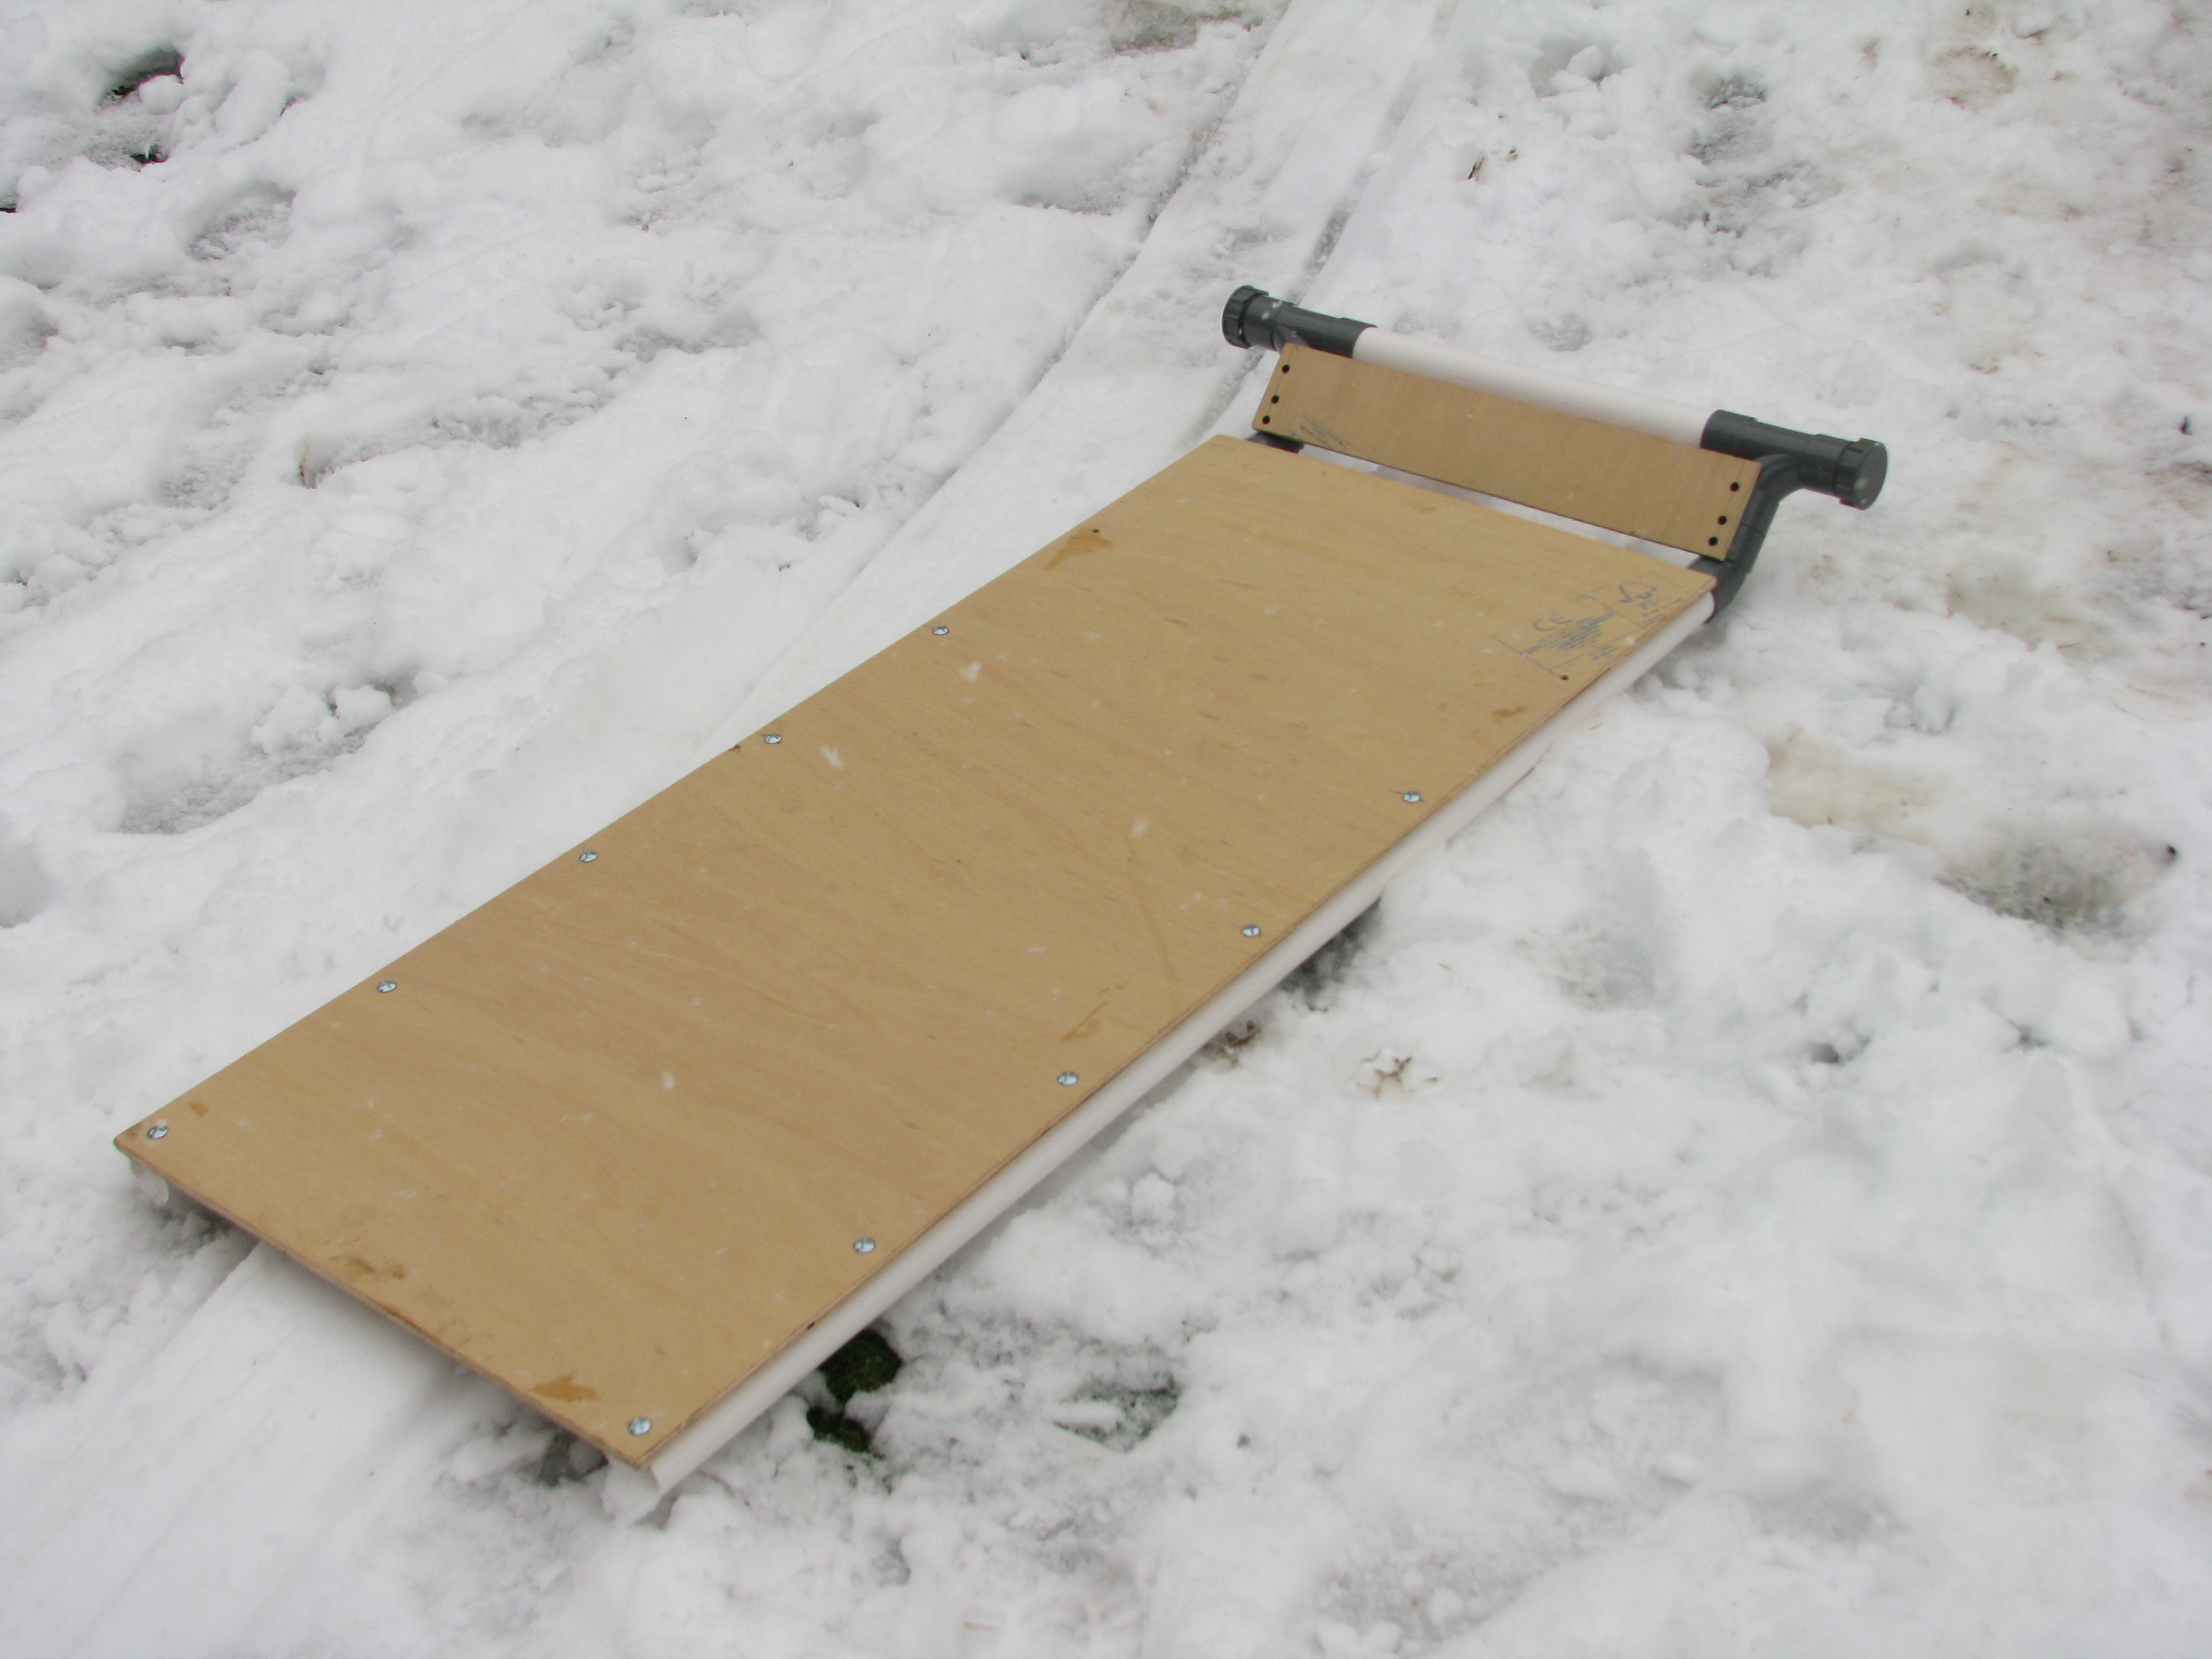 Picture of Steerable Plumbing Tube Sledge (sled)